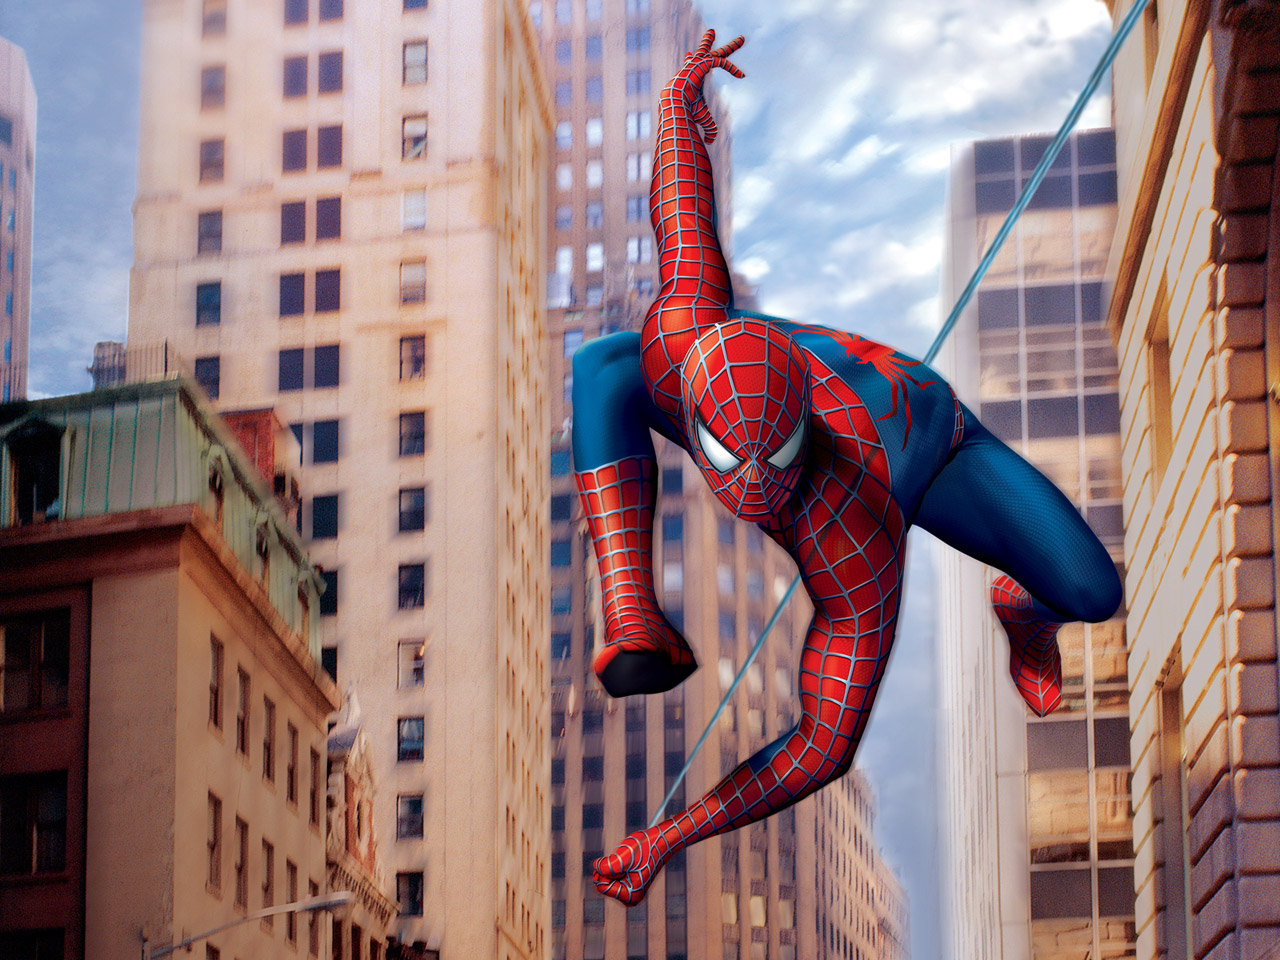 Spider man 2 game download for pc how can i win slot machines